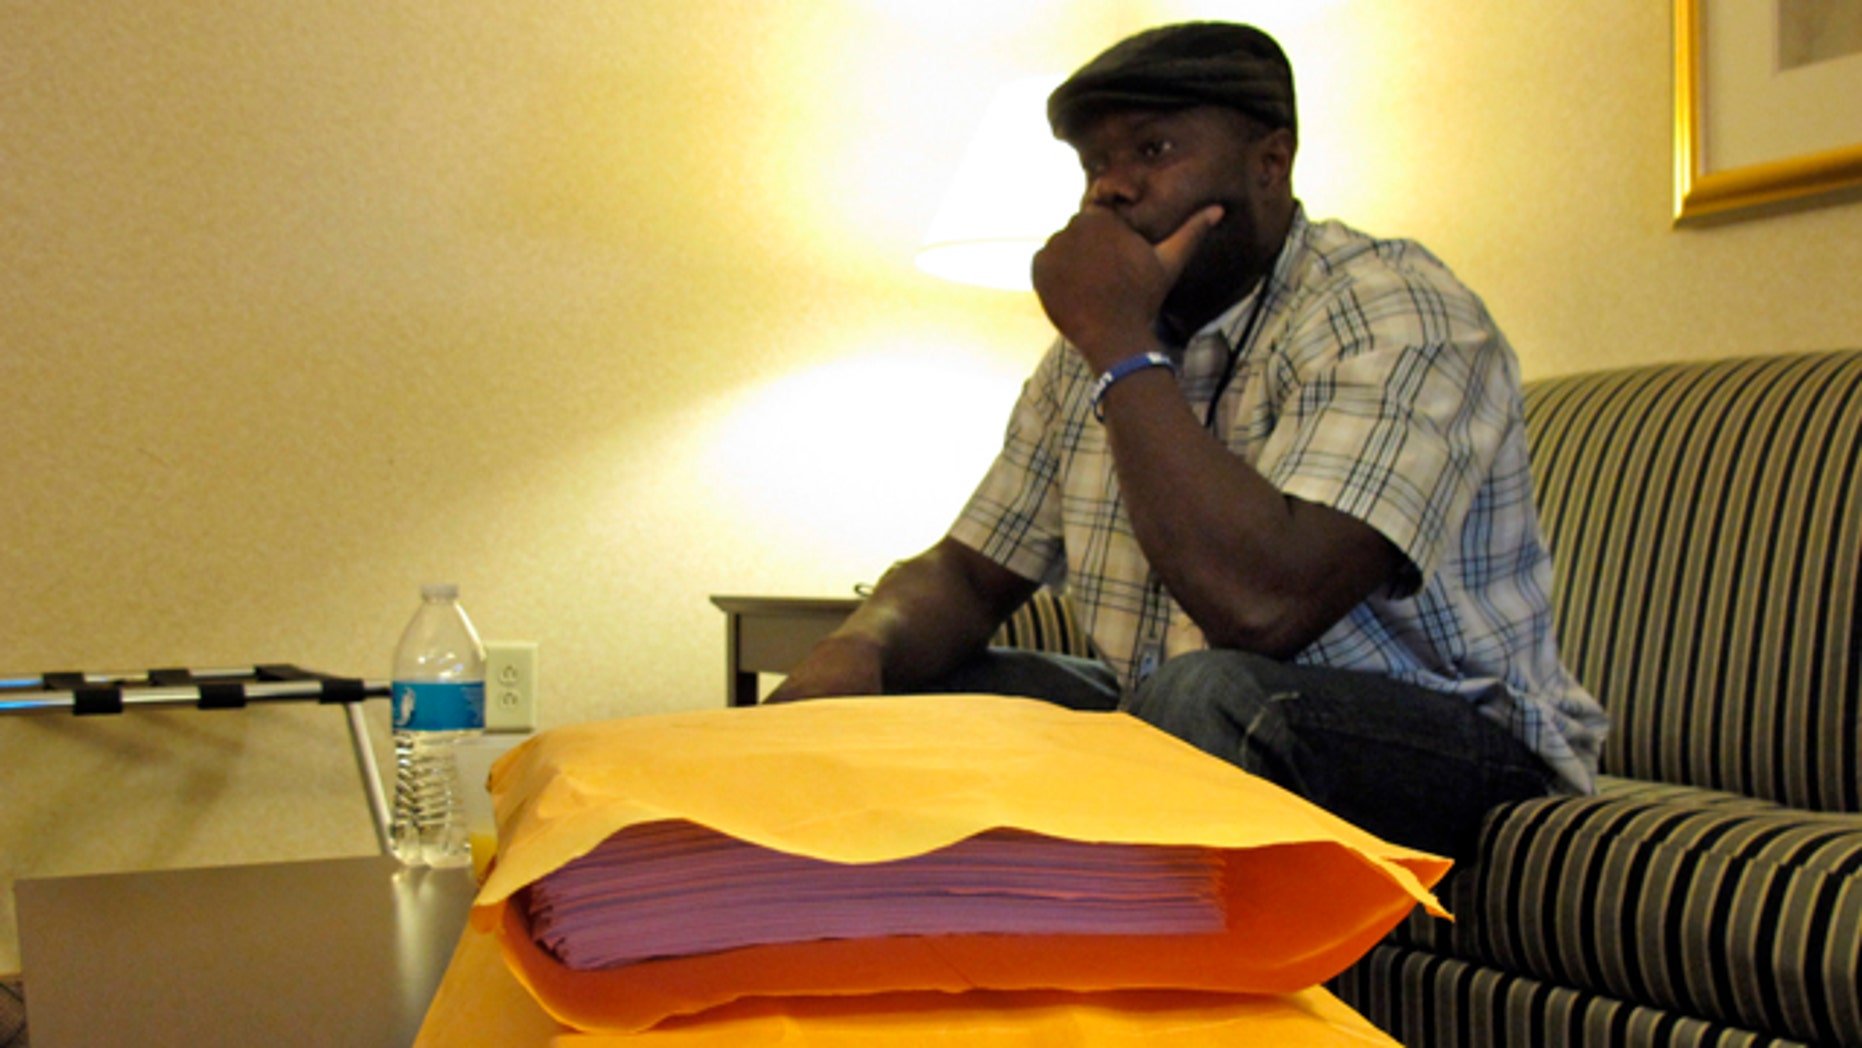 October 10, 2014: Josephus Weeks, nephew of Ebola patient Thomas Eric Duncan who died earlier this week in Dallas, sits behind a stack of medical documents in a hotel room in Kannapolis, N.C. (AP Photo/Allen G. Breed)